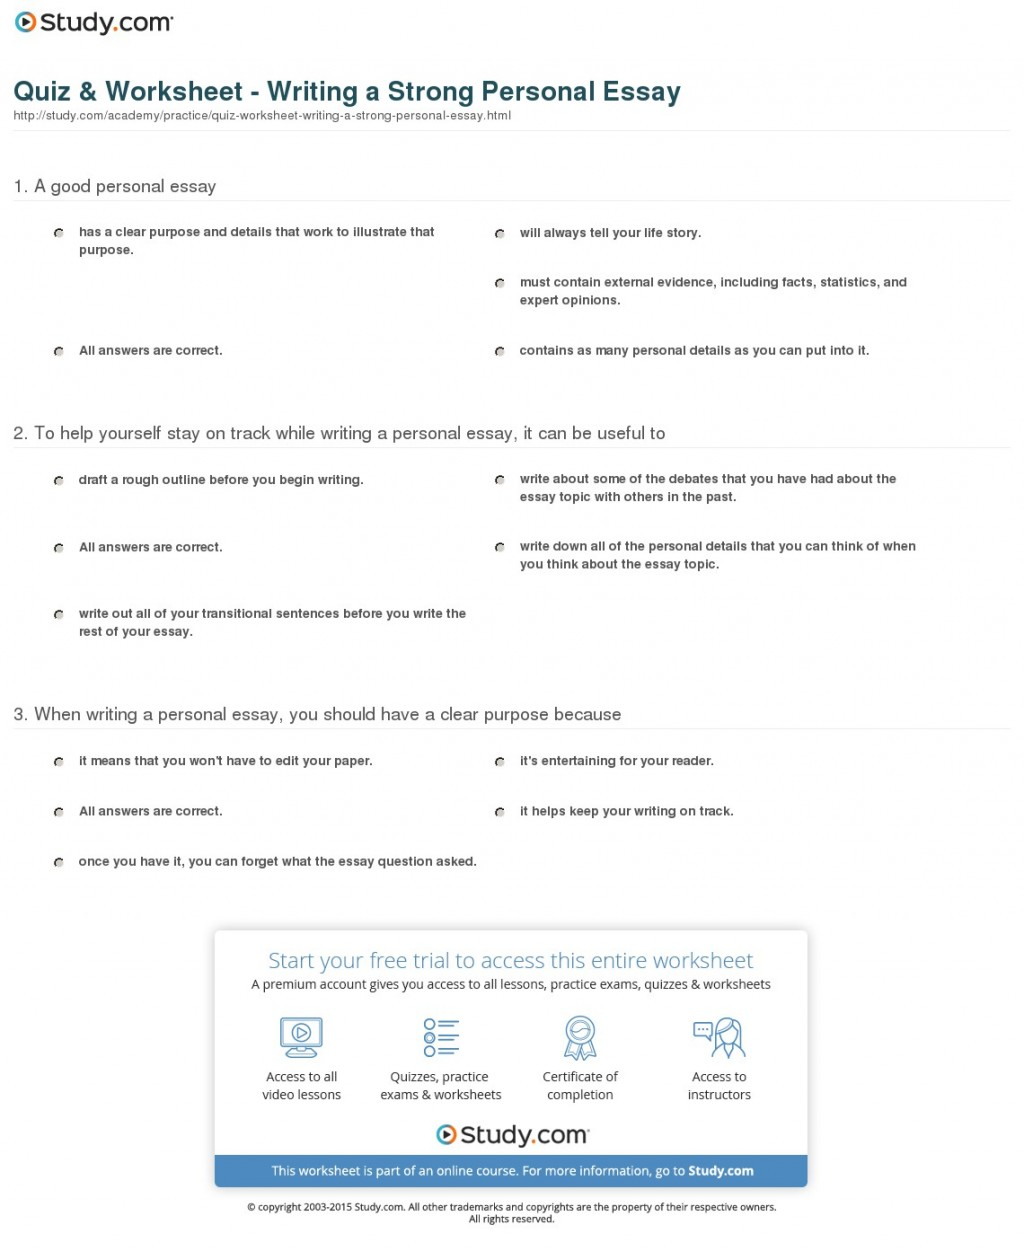 024 Quiz Worksheet Writing Strong Personal Essay What Is The Purpose Of An Wonderful Introduction In Brainly Outline For Argumentative With A Focus On Division-classification Large